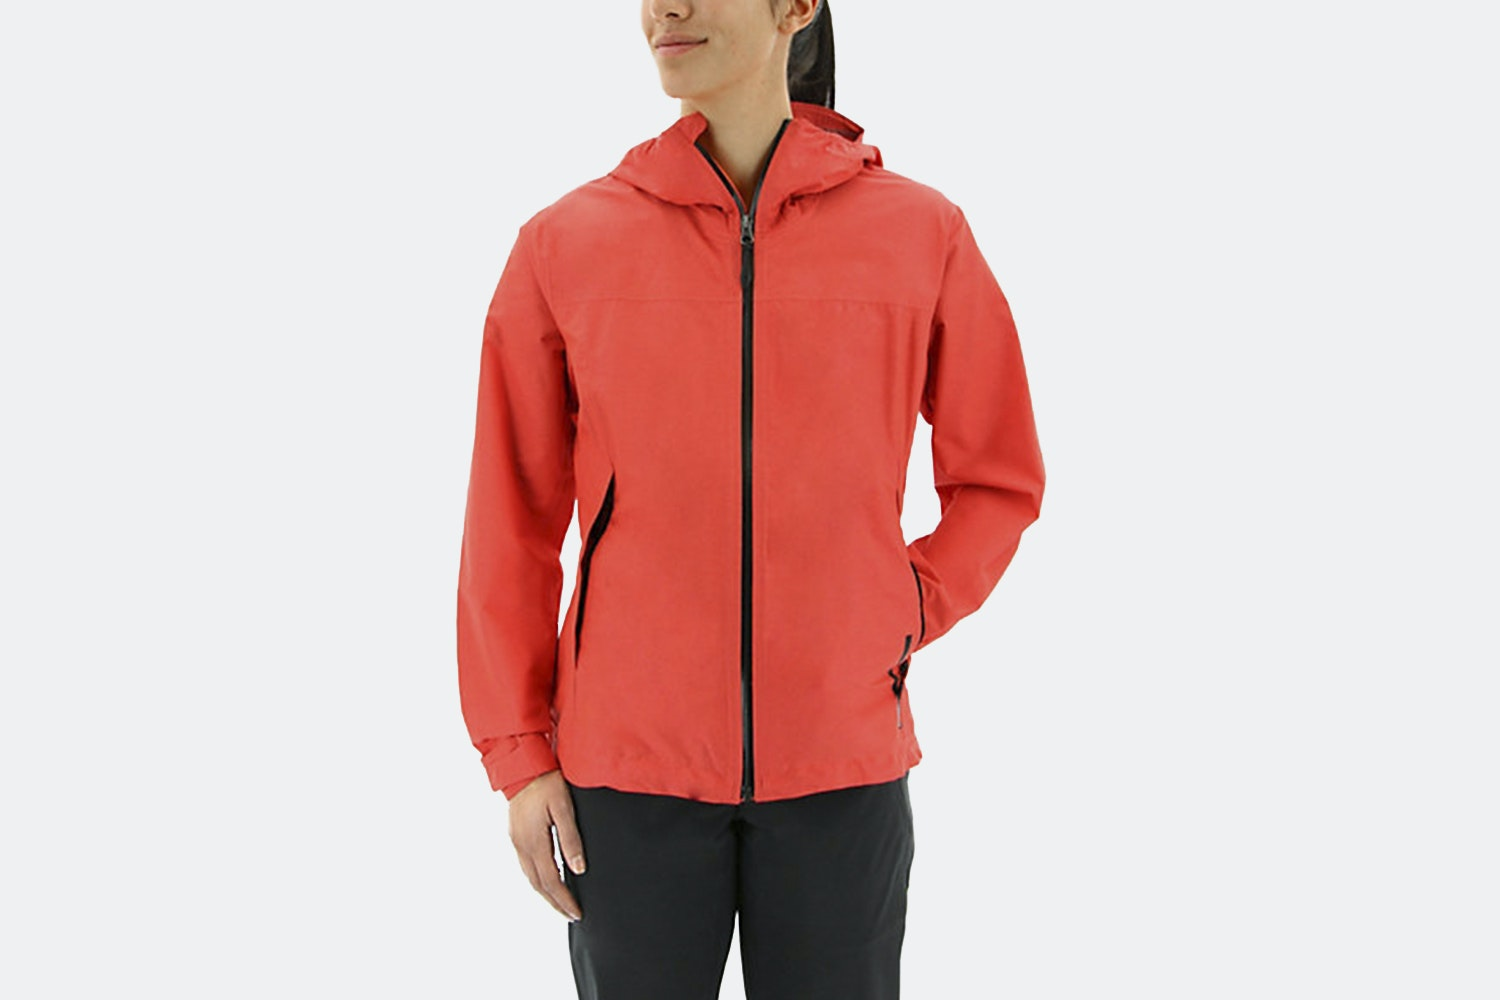 Women's – easy coral